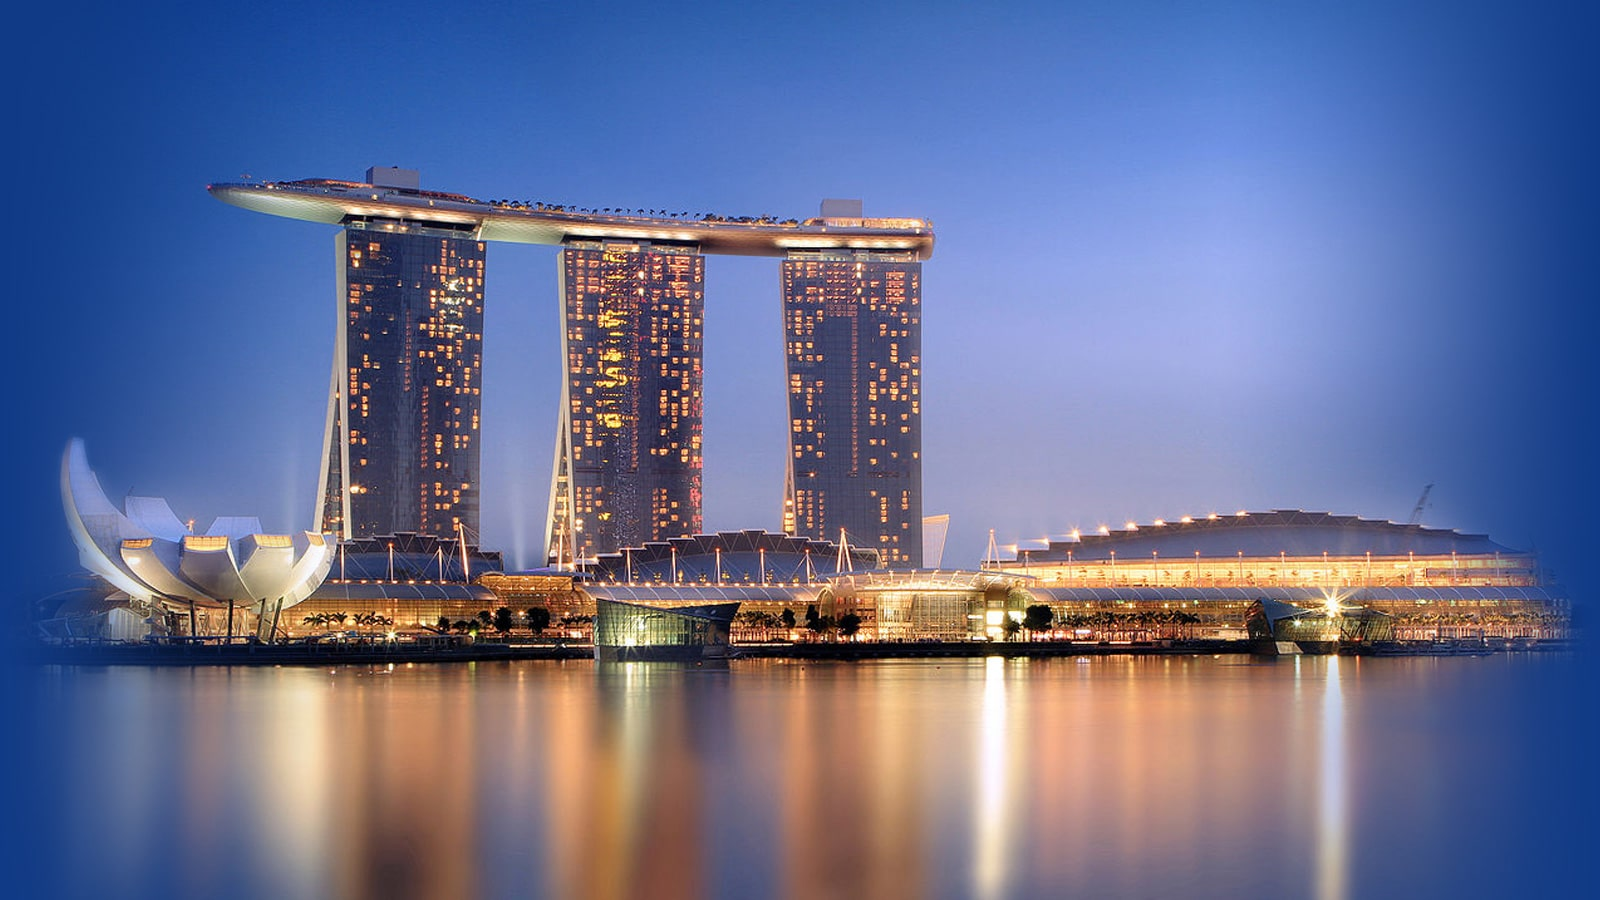 Marina Bay Sands Expo – Singapore